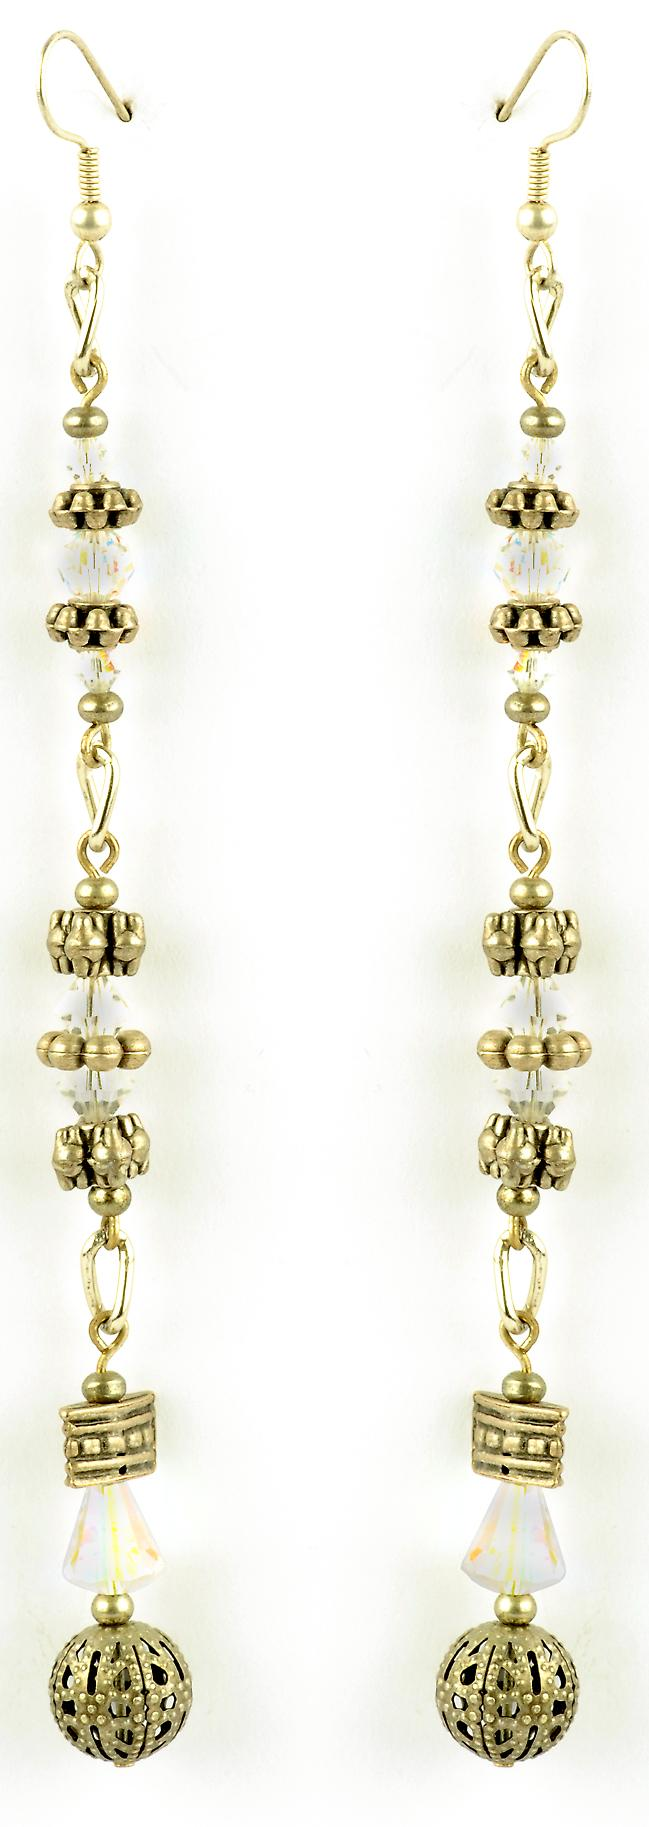 Waooh - Fashion Jewellery - WJ0791 - On Earrings with Swarovski White - Frame Color Silver